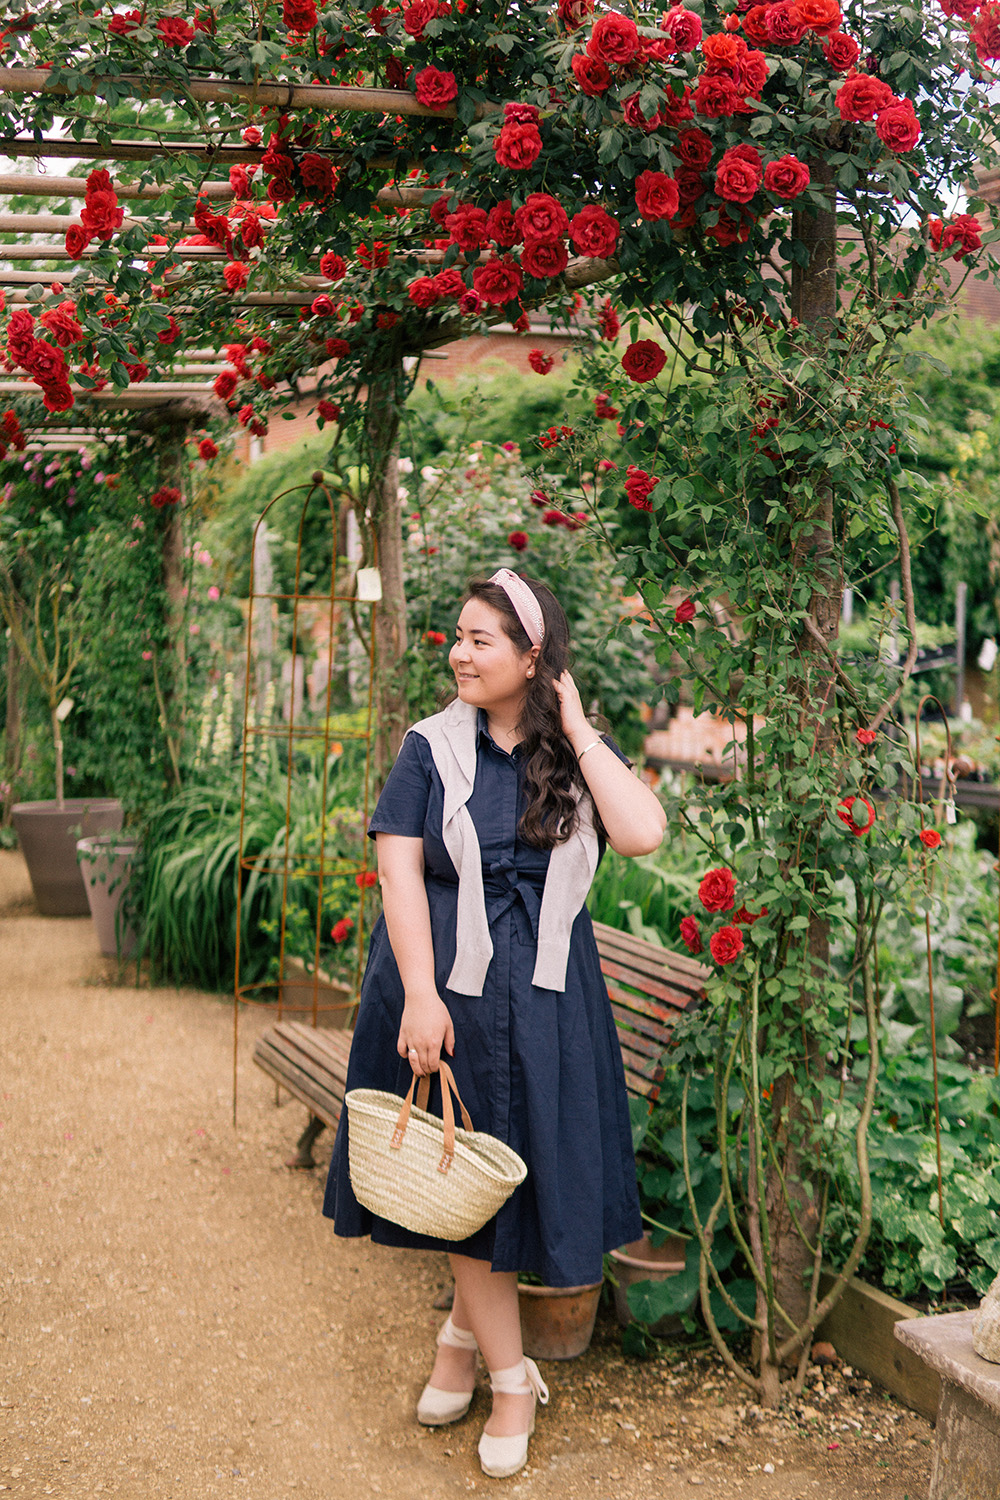 Petersham-Nurseries-photography-classic-summer-style-ootd